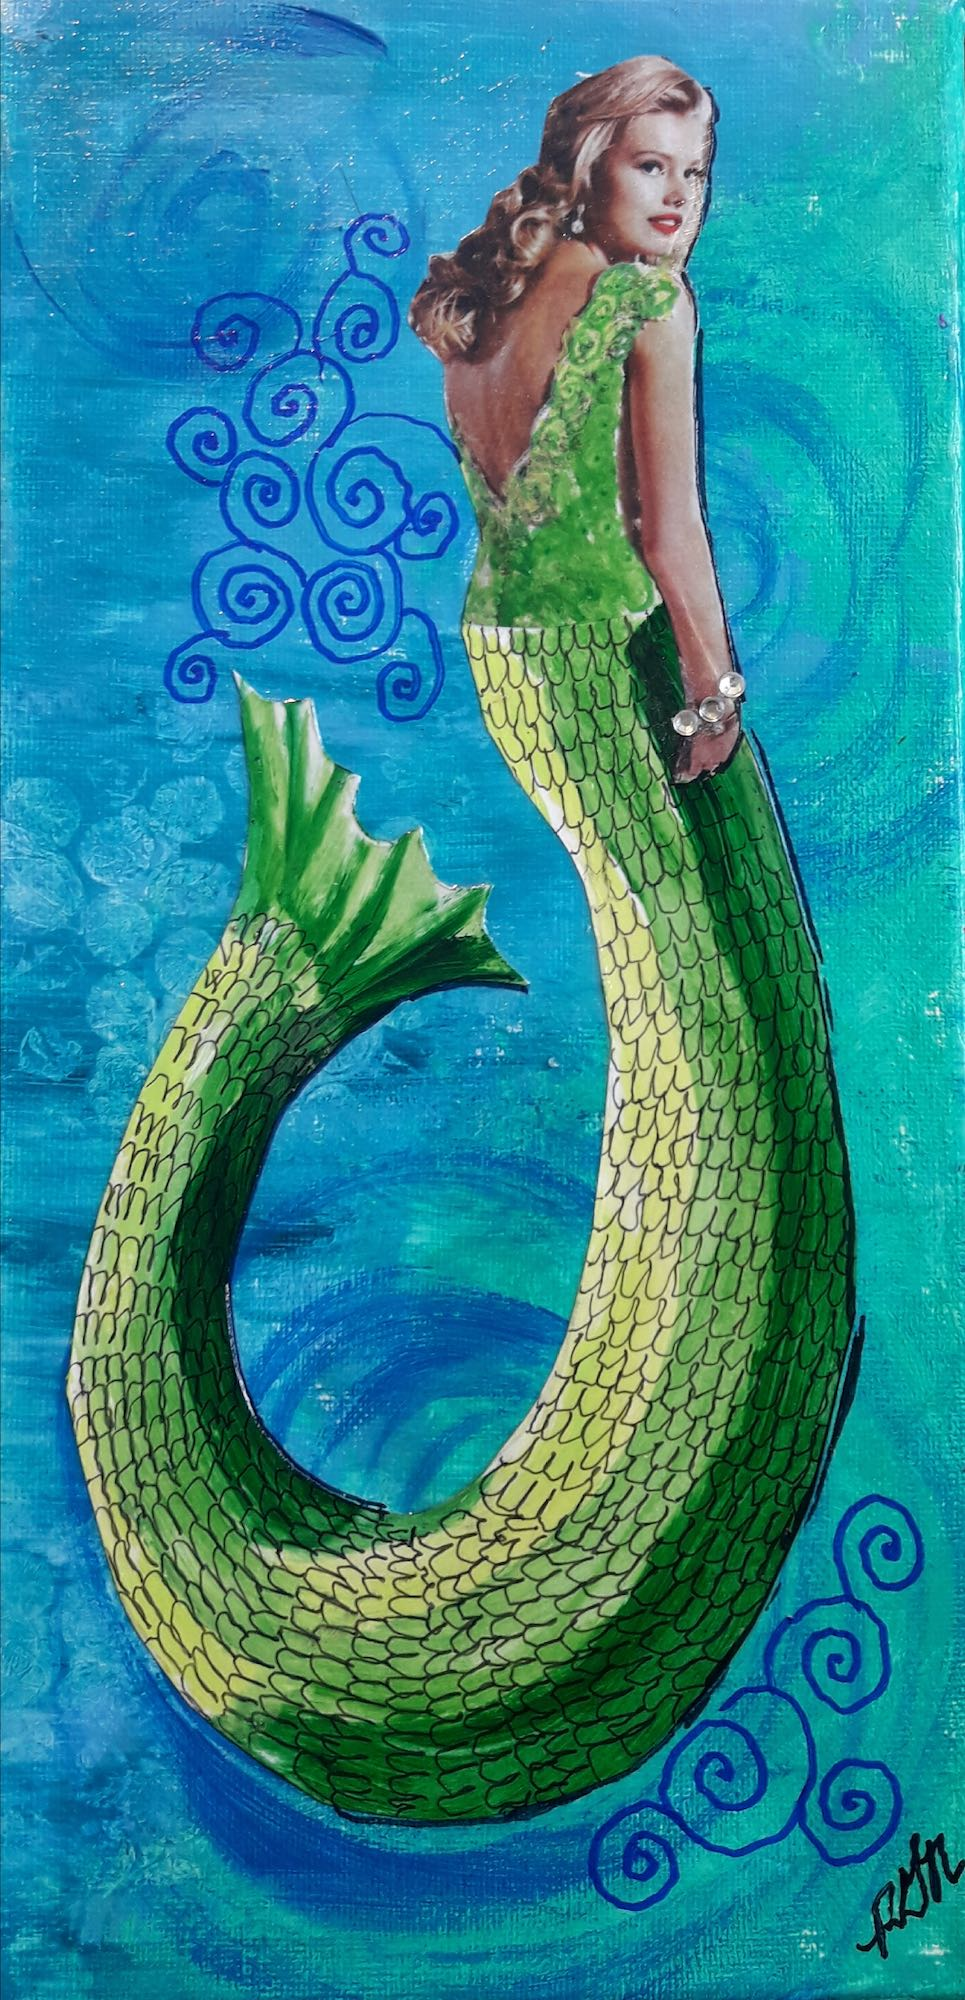 Sea Siren mermaid art for the beach